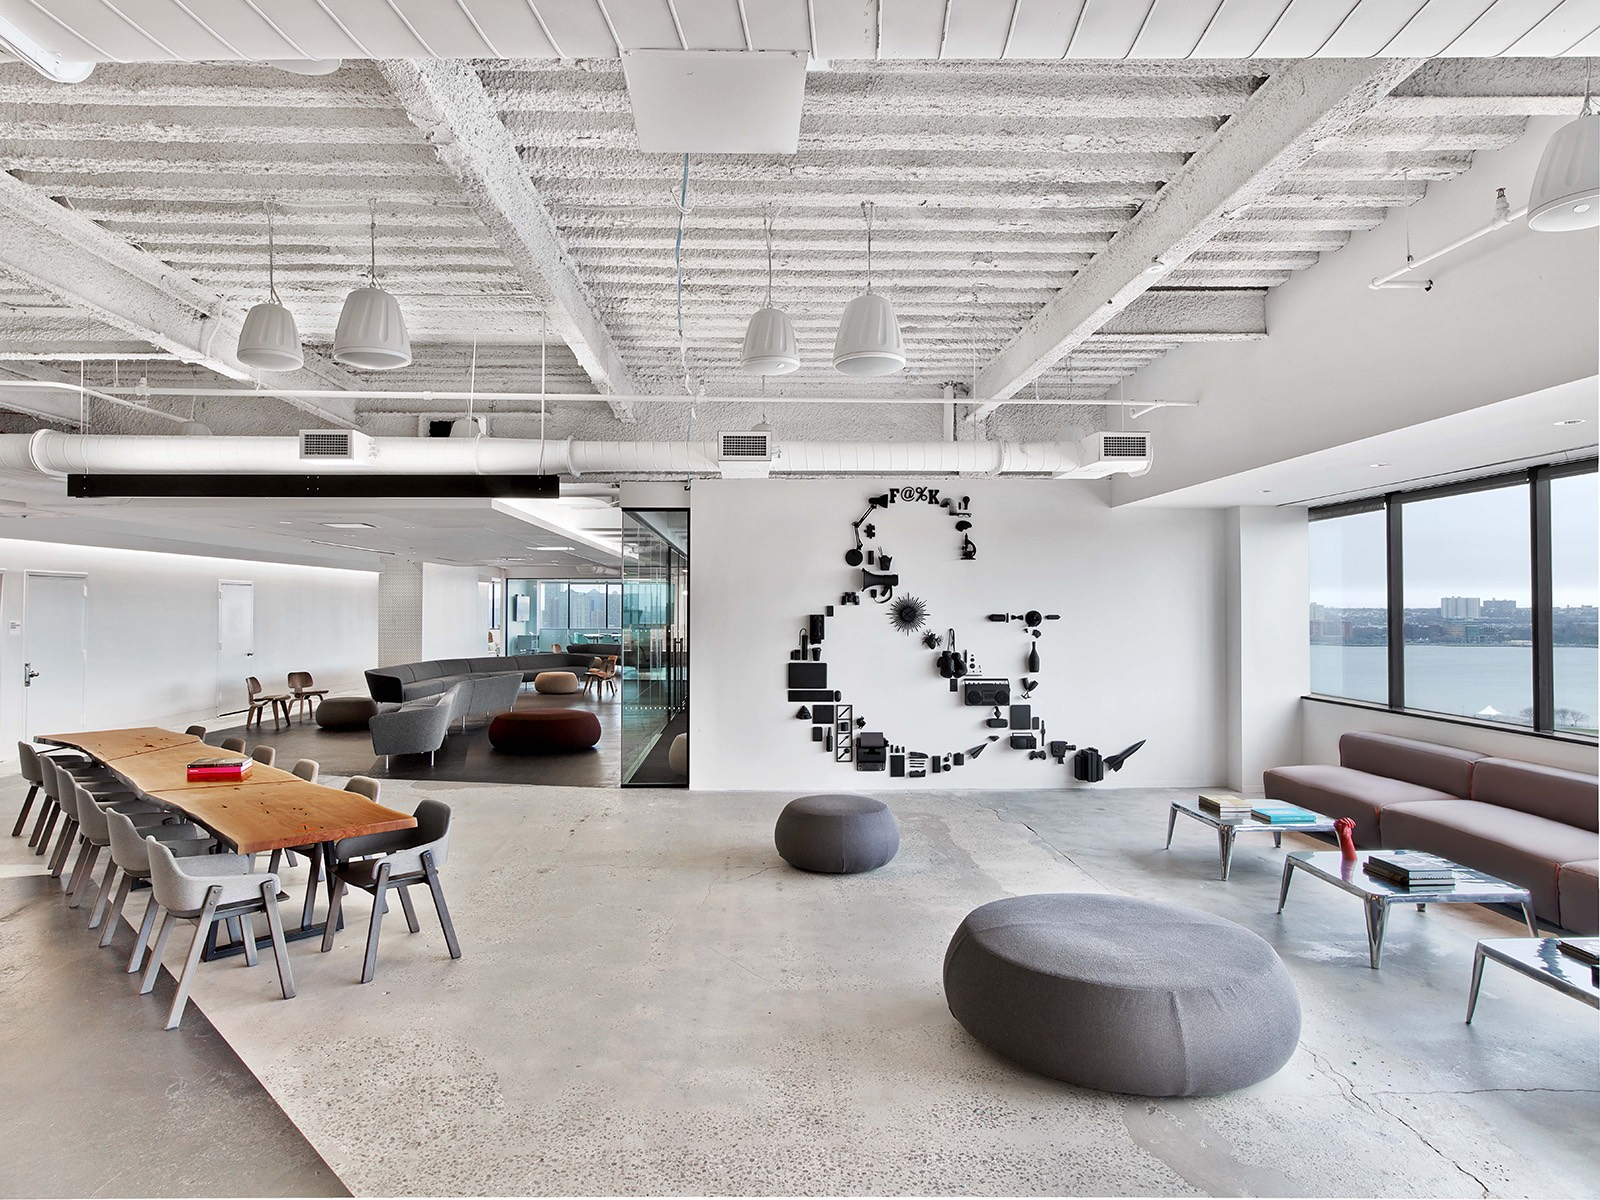 saatchi-saatchi-nyc-office-2